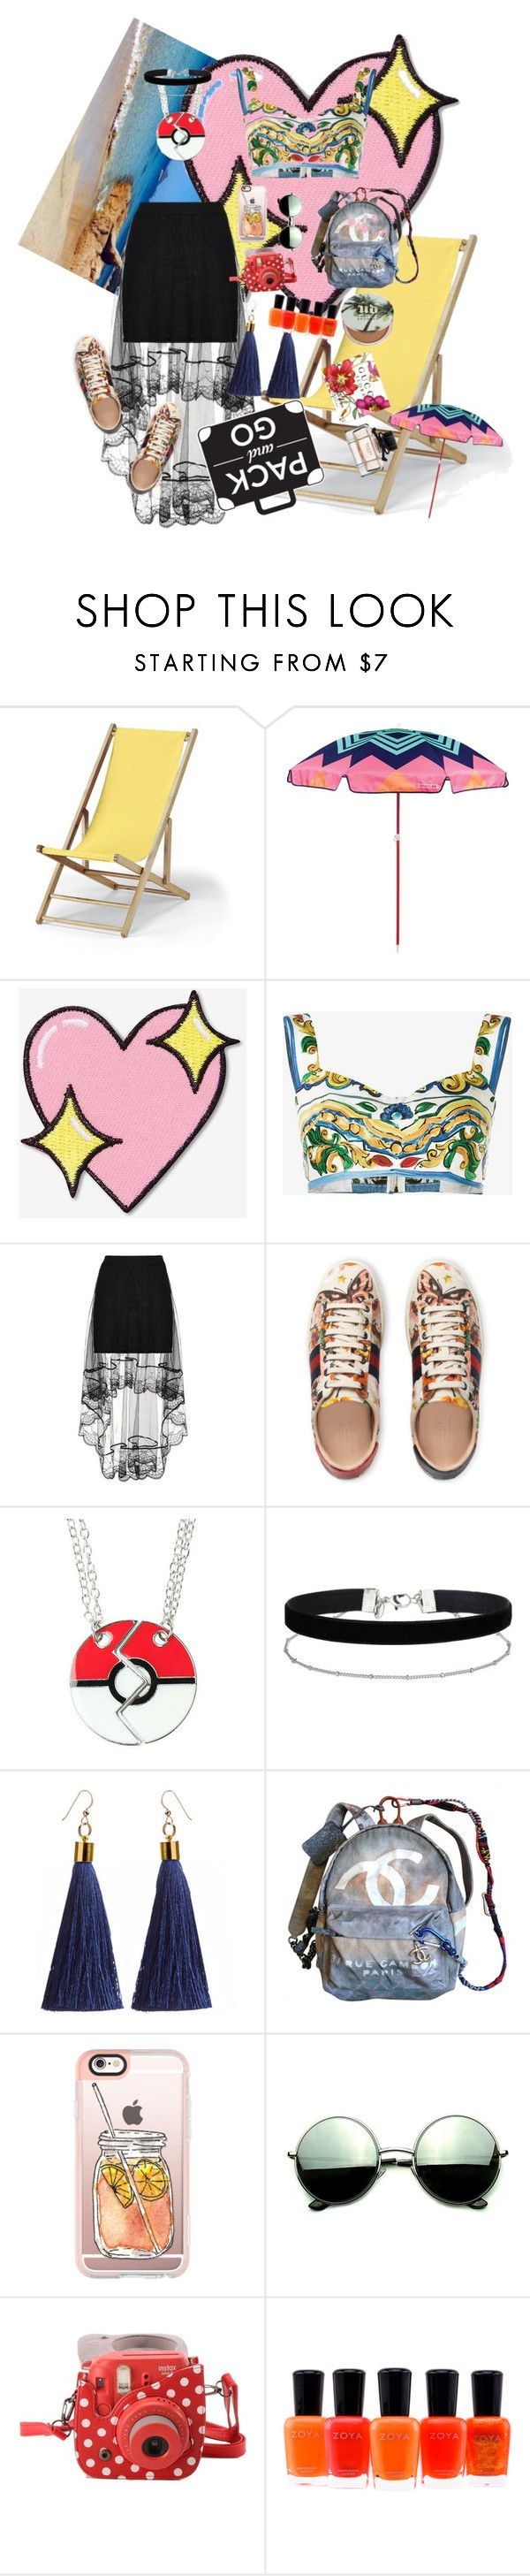 """Riomon-Go"" by stapleluc on Polyvore featuring Telescope Casual, Sunnylife, Big Bud Press, Dolce&Gabbana, Gucci, Miss Selfridge, Chanel, Casetify, Revo and Fujifilm"